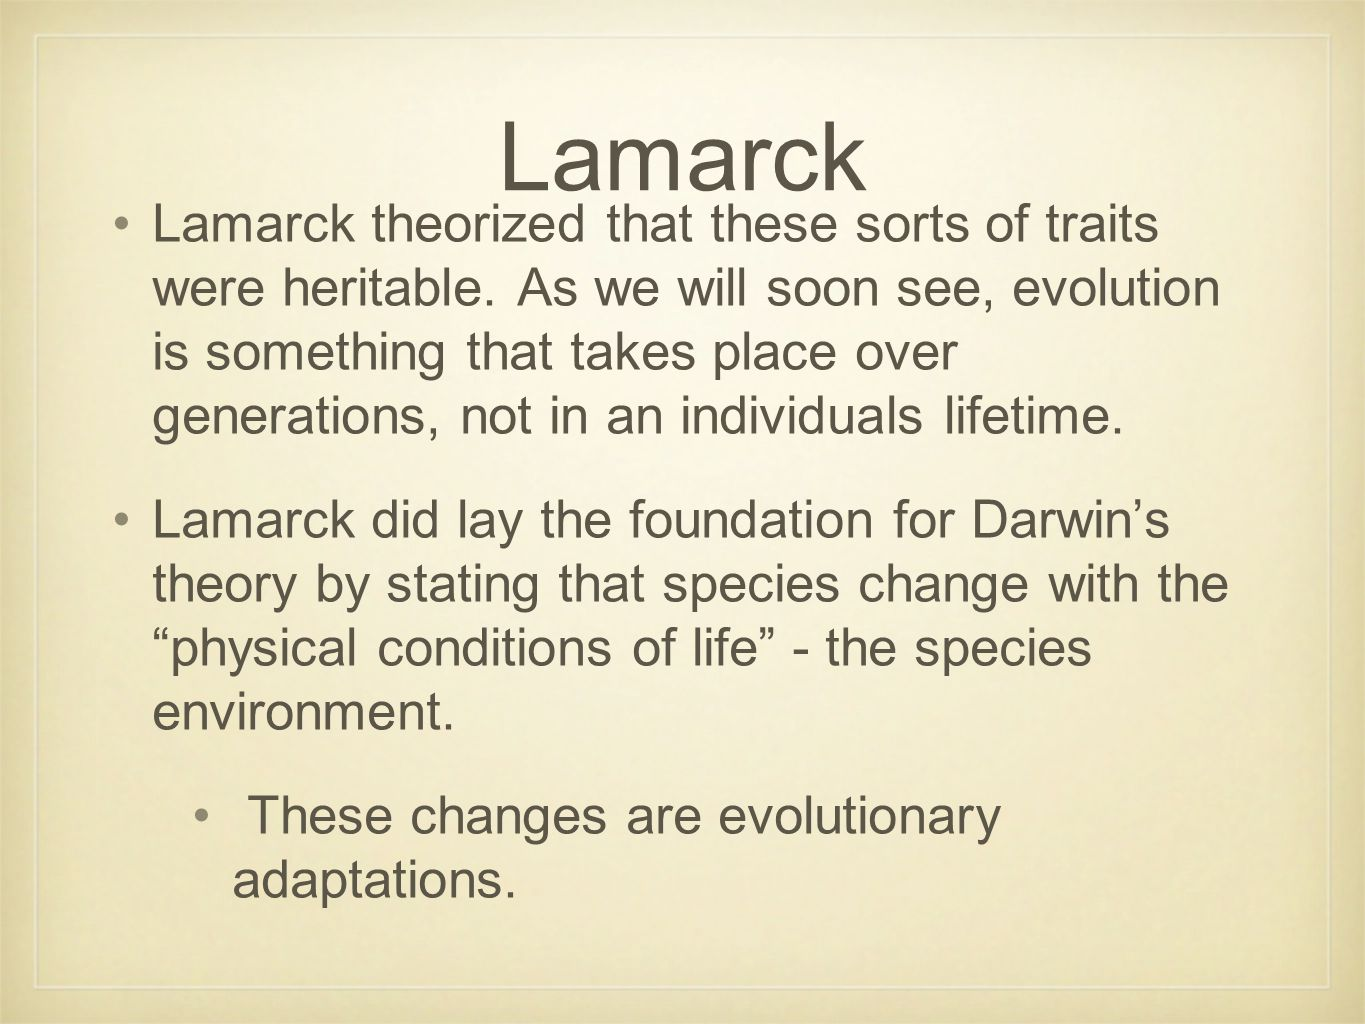 Lamarck theorized that these sorts of traits were heritable. As we will soon see, evolution is something that takes place over generations, not in an